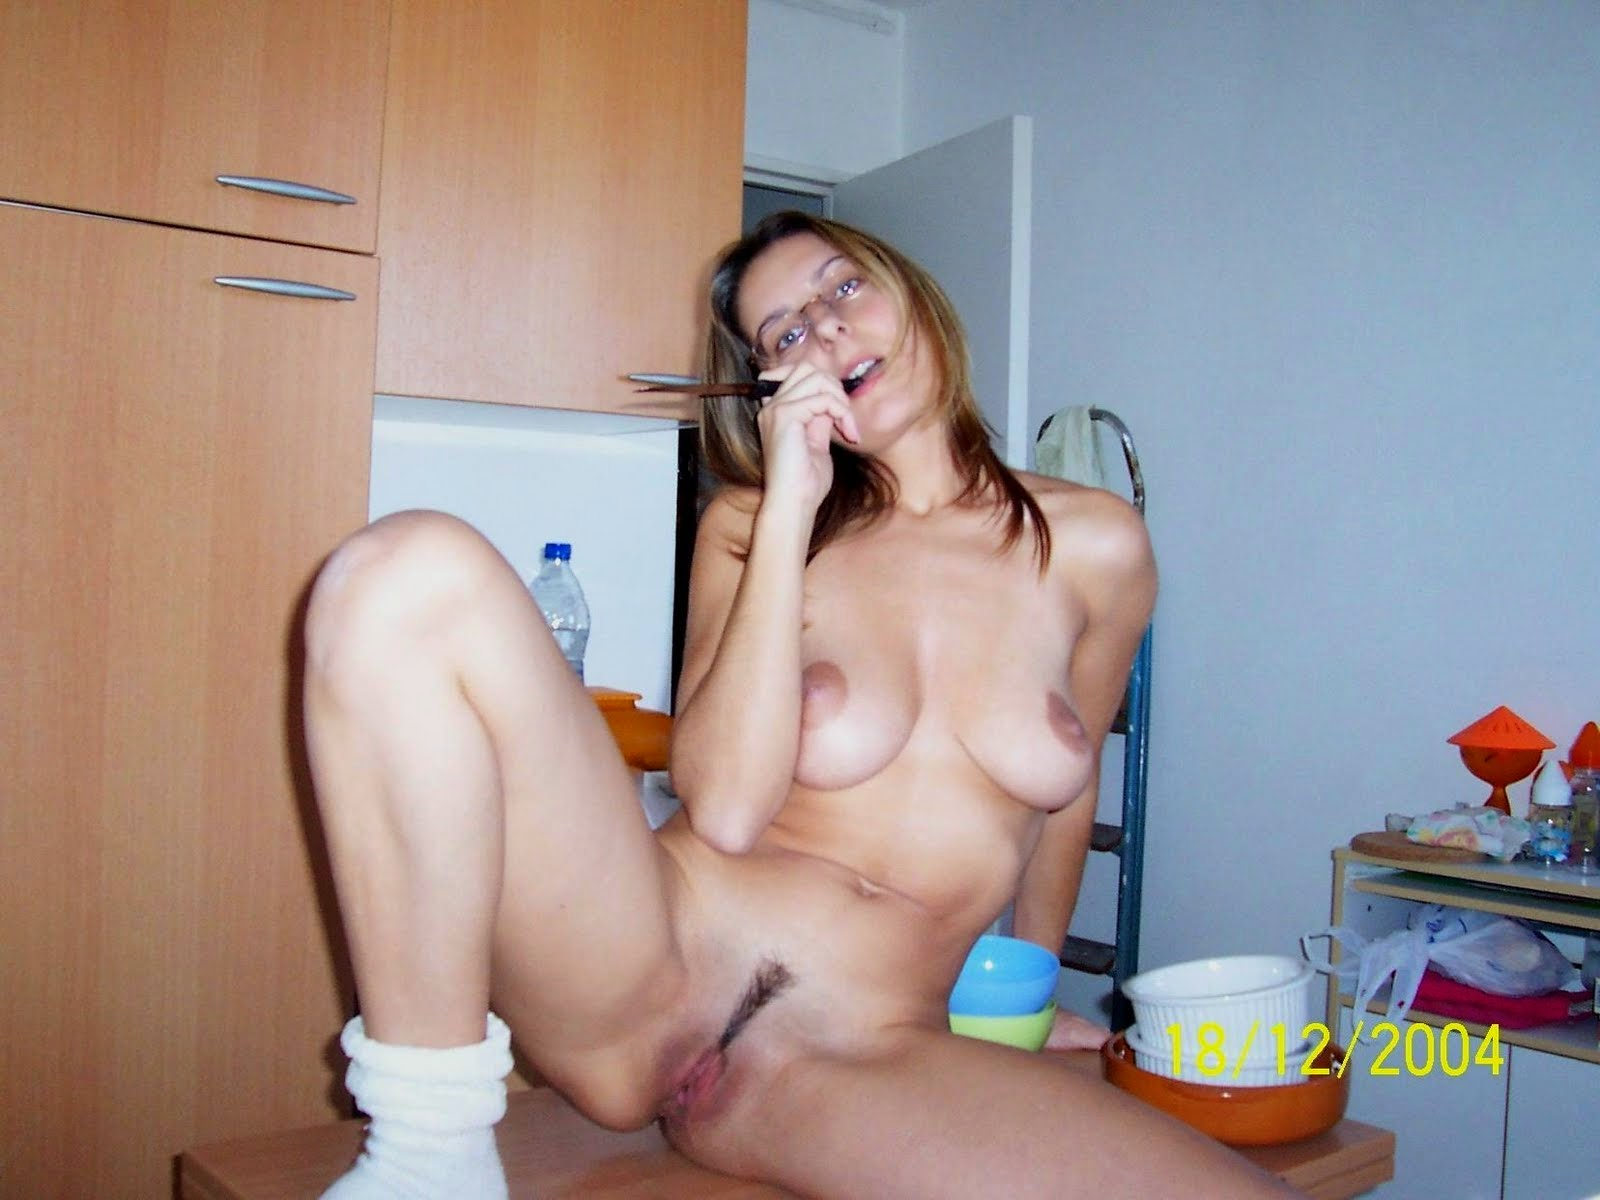 nerd girls naked Ugly